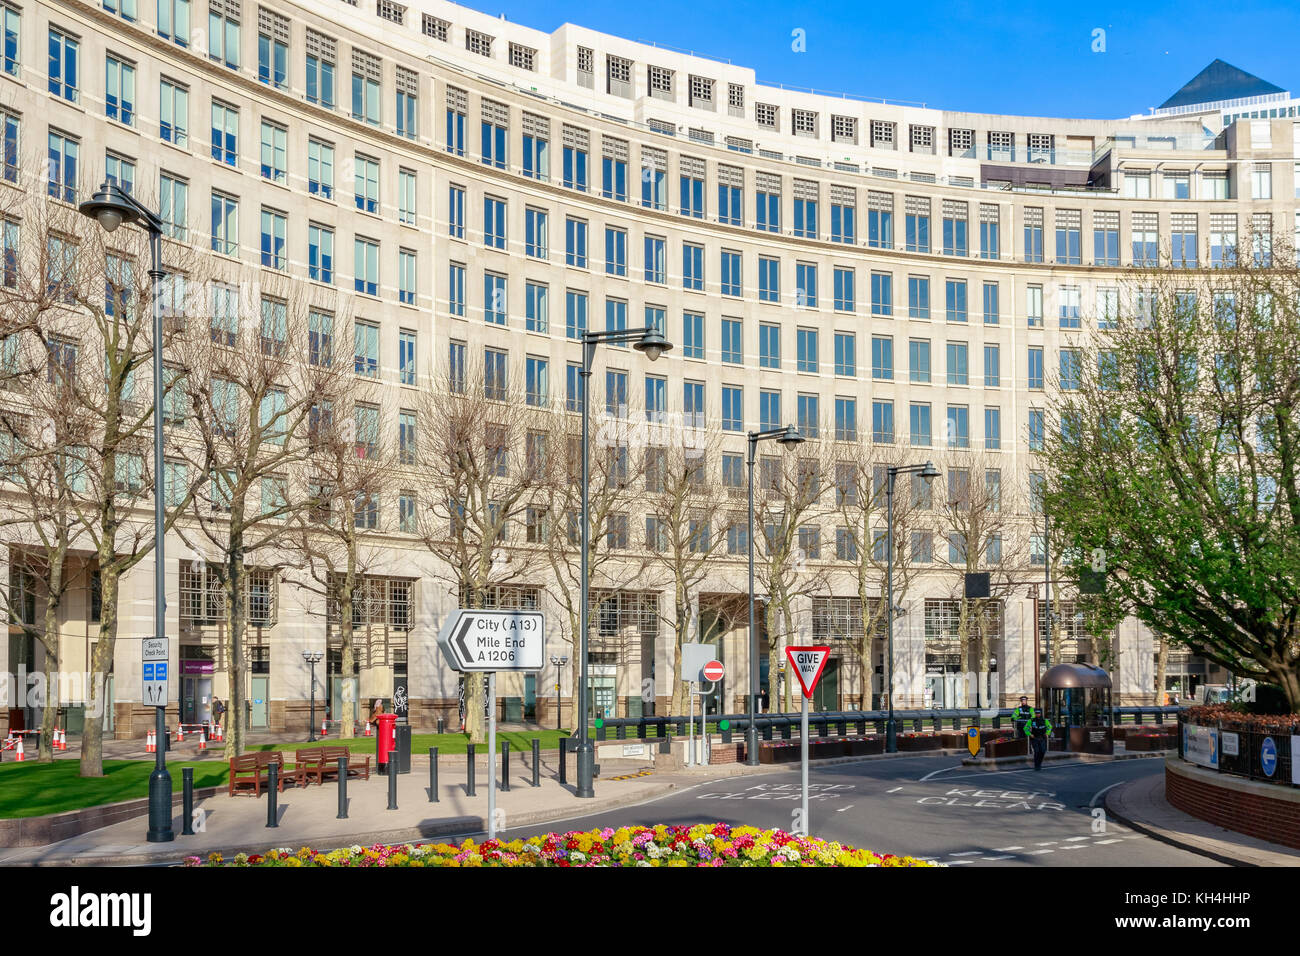 London, UK - November 24, 2017 - Facade of an office building on Westferry Circus in Canary Wharf - Stock Image